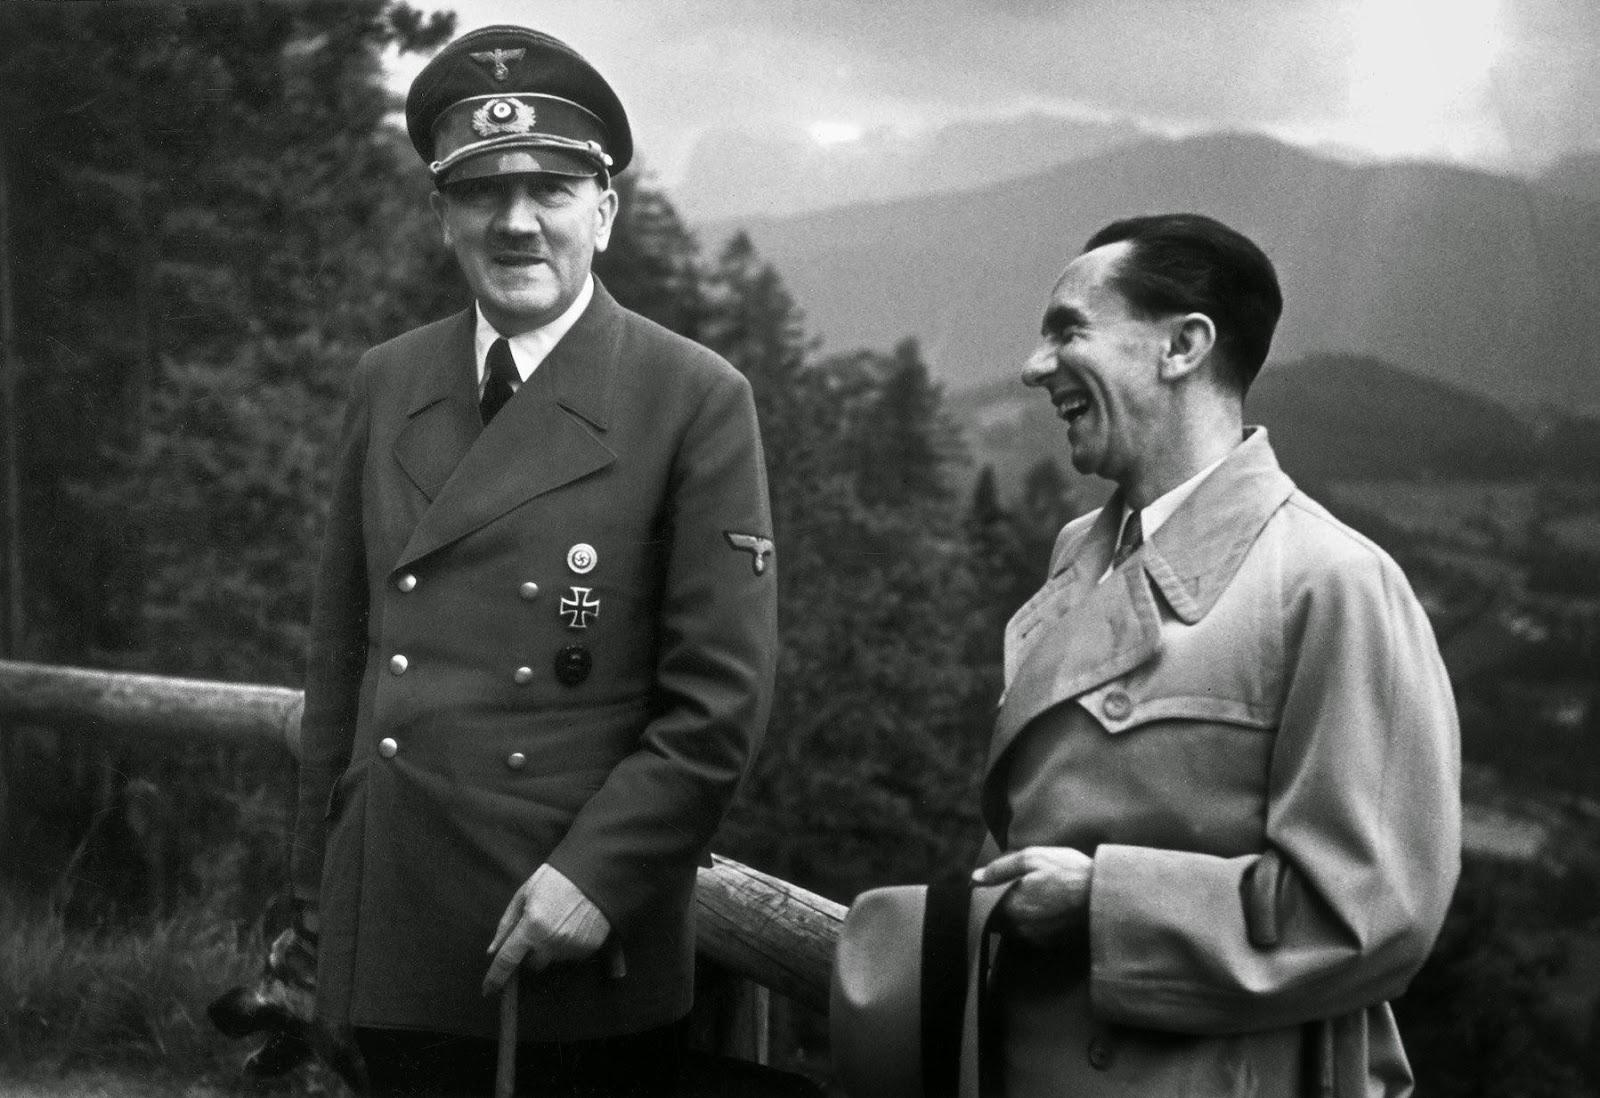 Goebbels with Hitler at the Nazi leader's private home (1943)